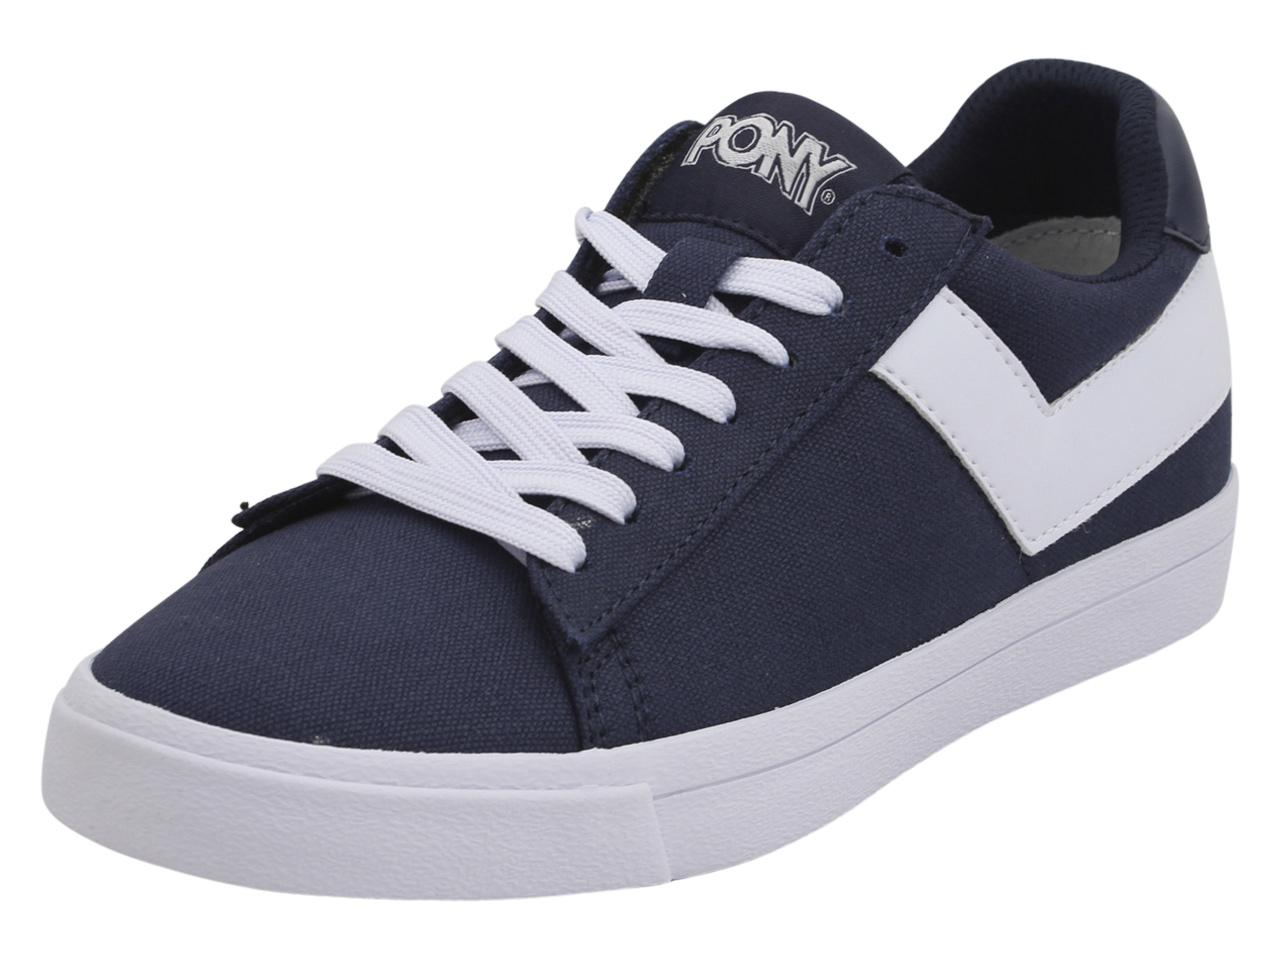 Image of Pony Women's Top Star Lo Core Canvas Sneakers Shoes - Blue - 6.5 B(M) US